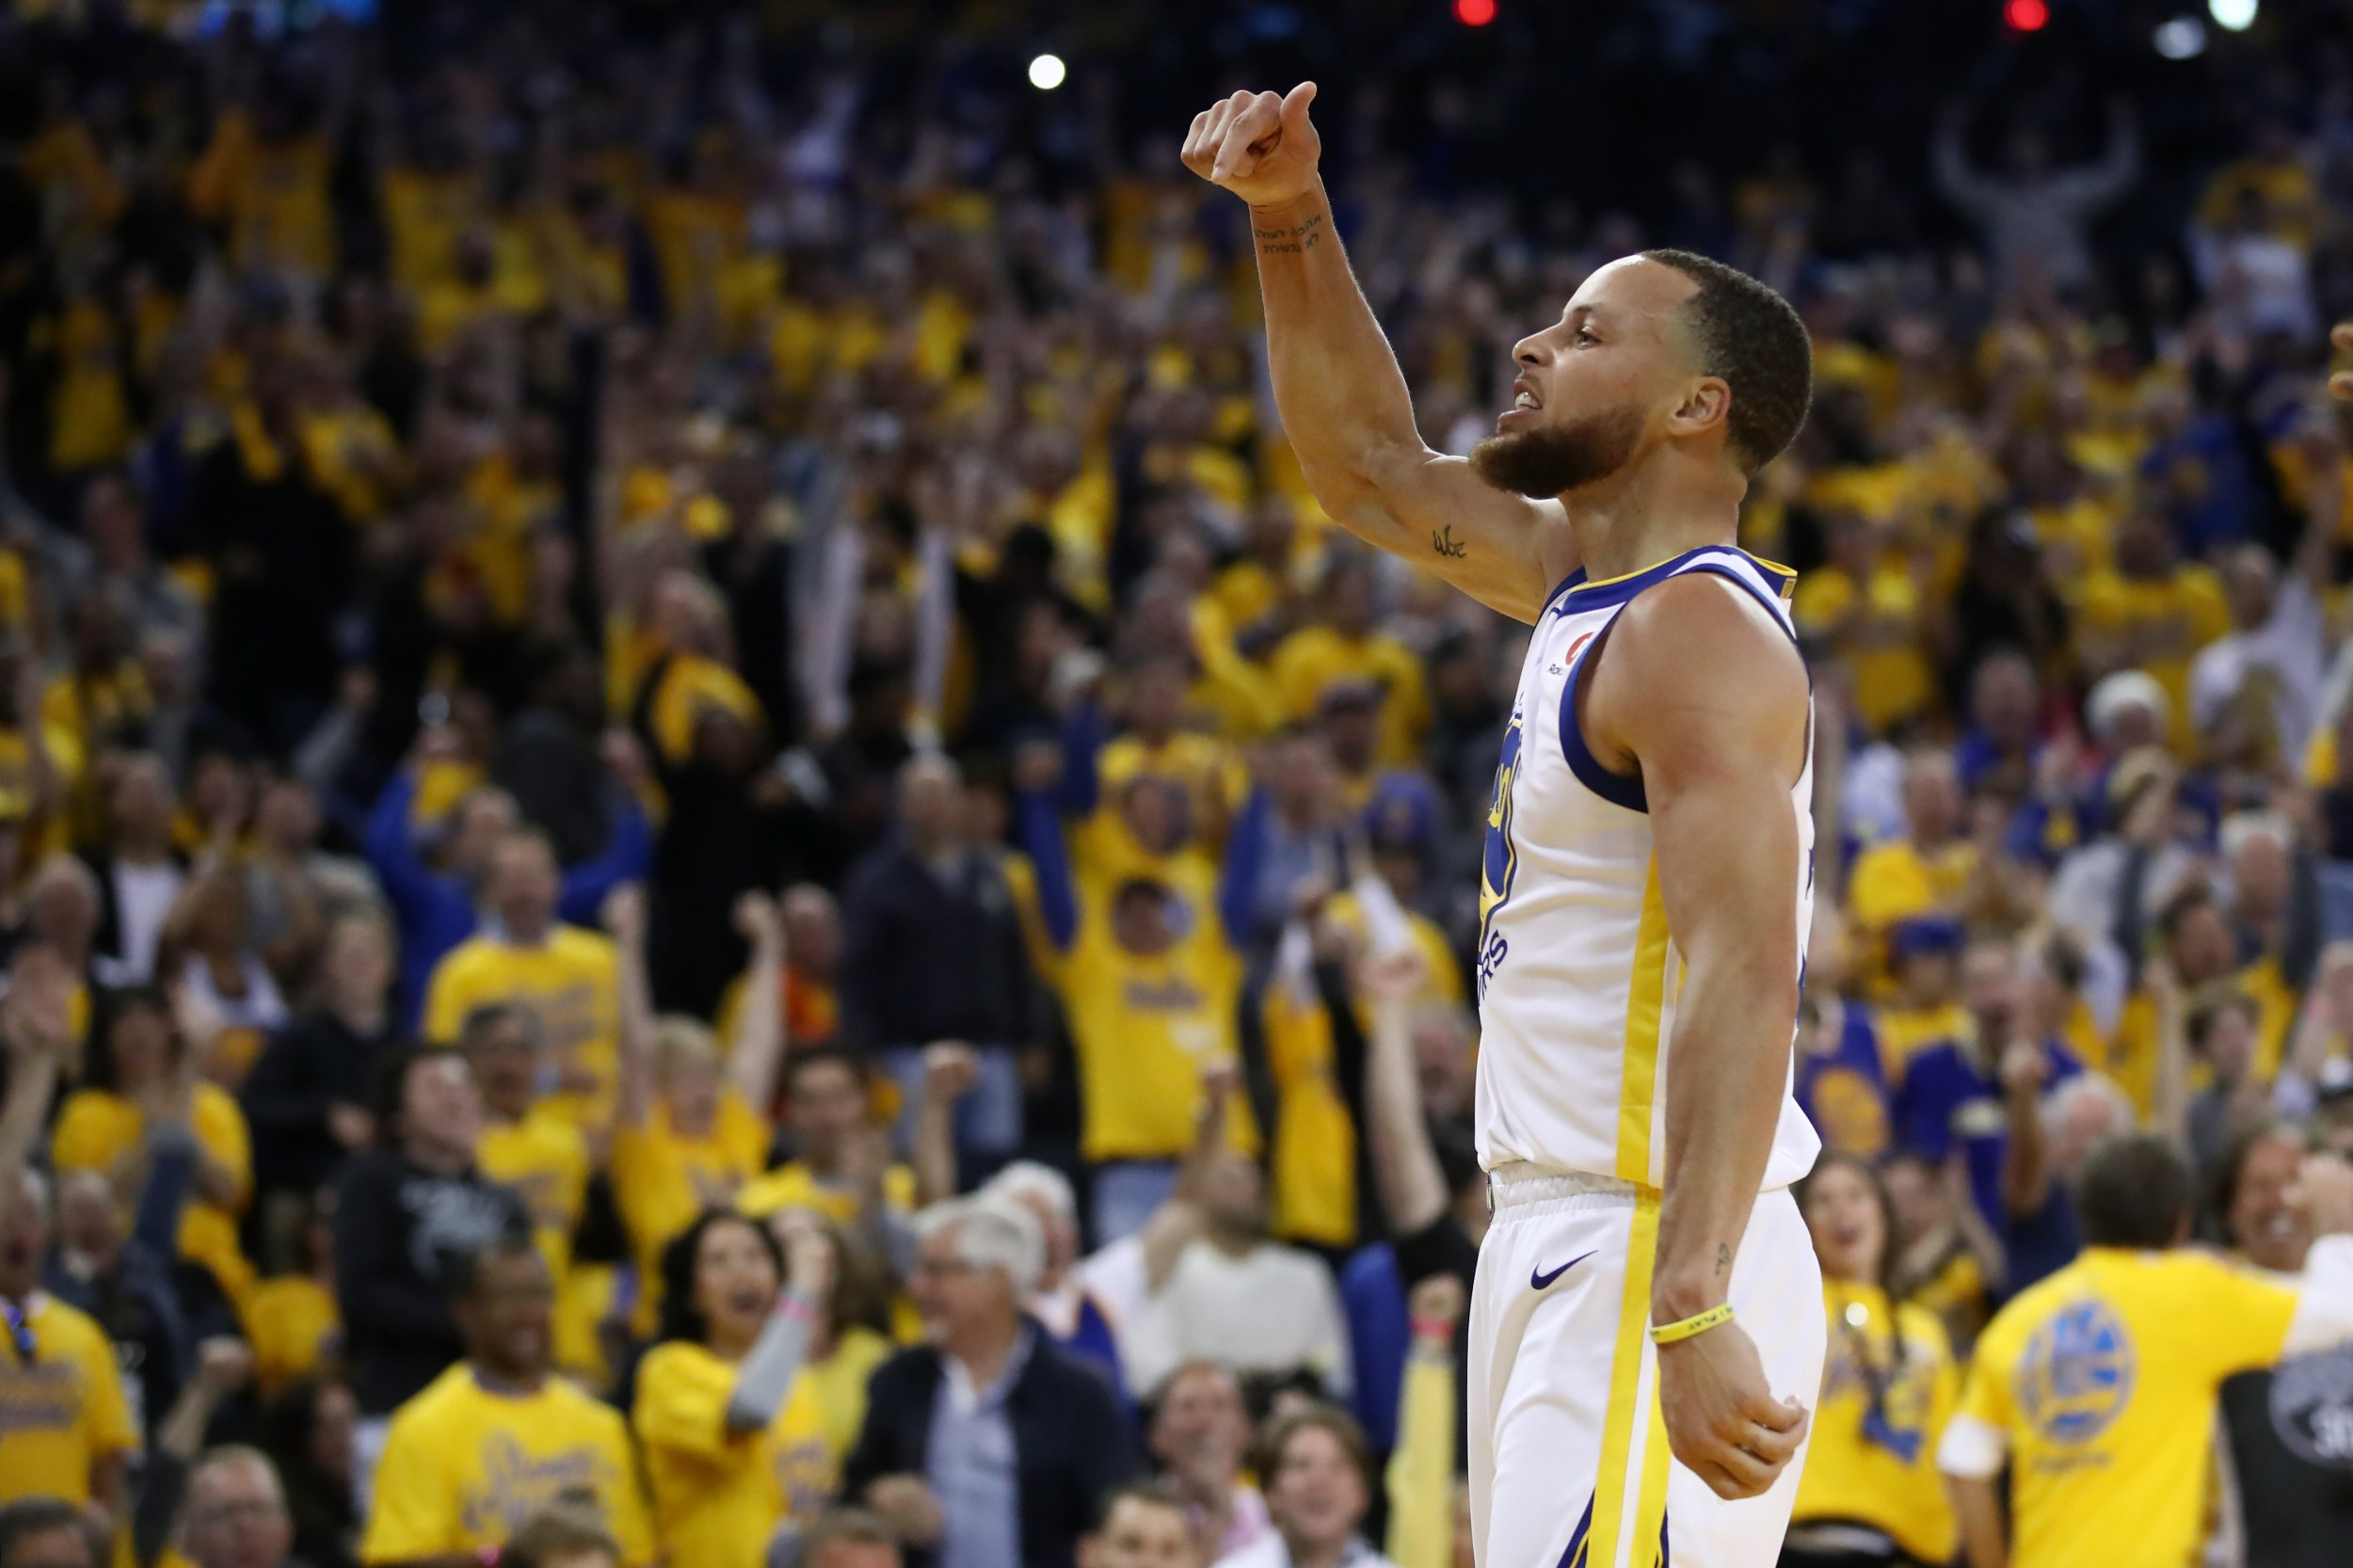 'This Is My House': Steph Curry Rebuked by His Mom After Outburst in Game Three